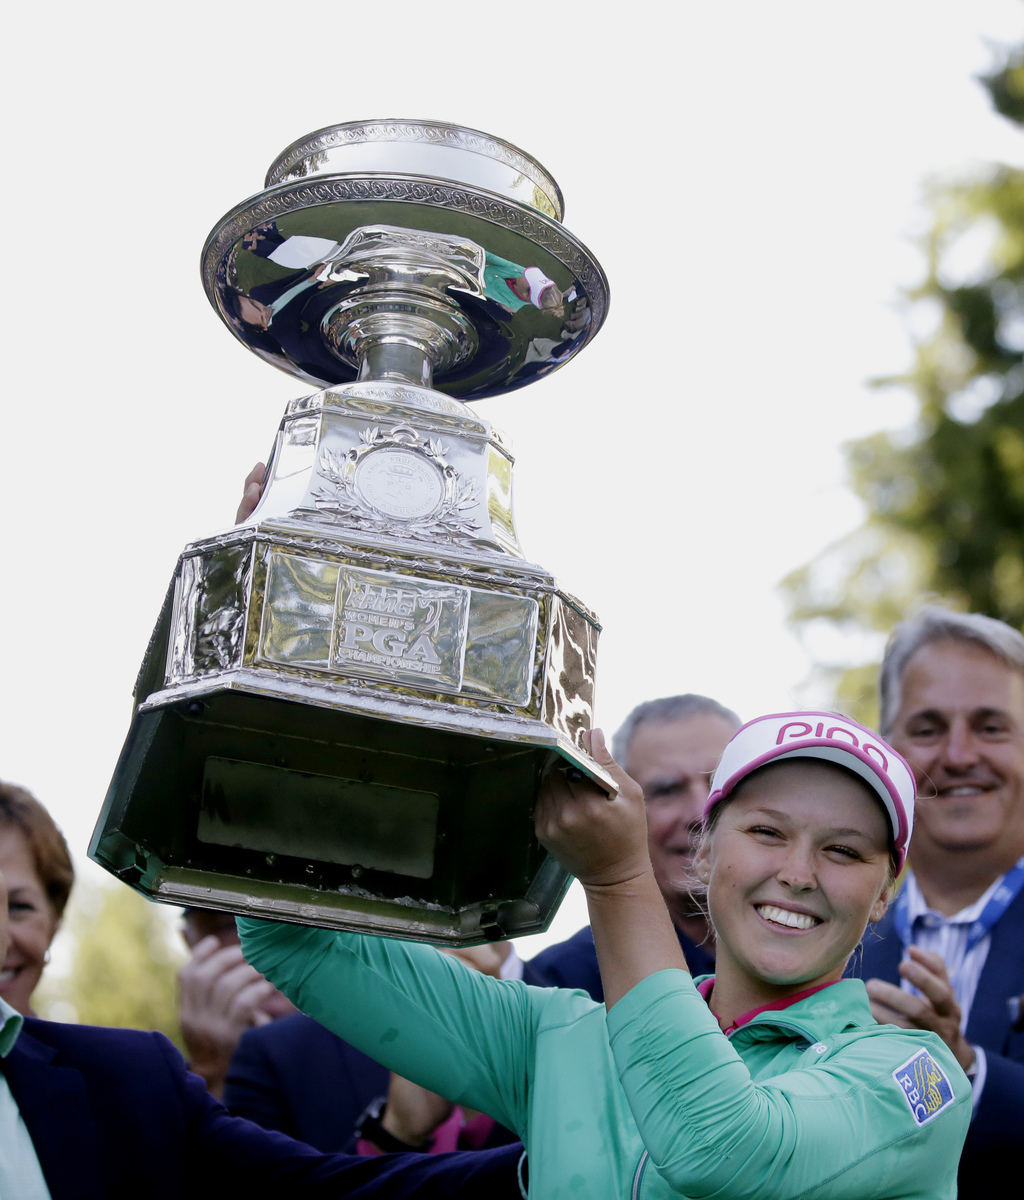 FILE - In this June 12, 2016, file photo, Brooke Henderson, of Canada, lifts the championship trophy after winning the Women's PGA Cham...